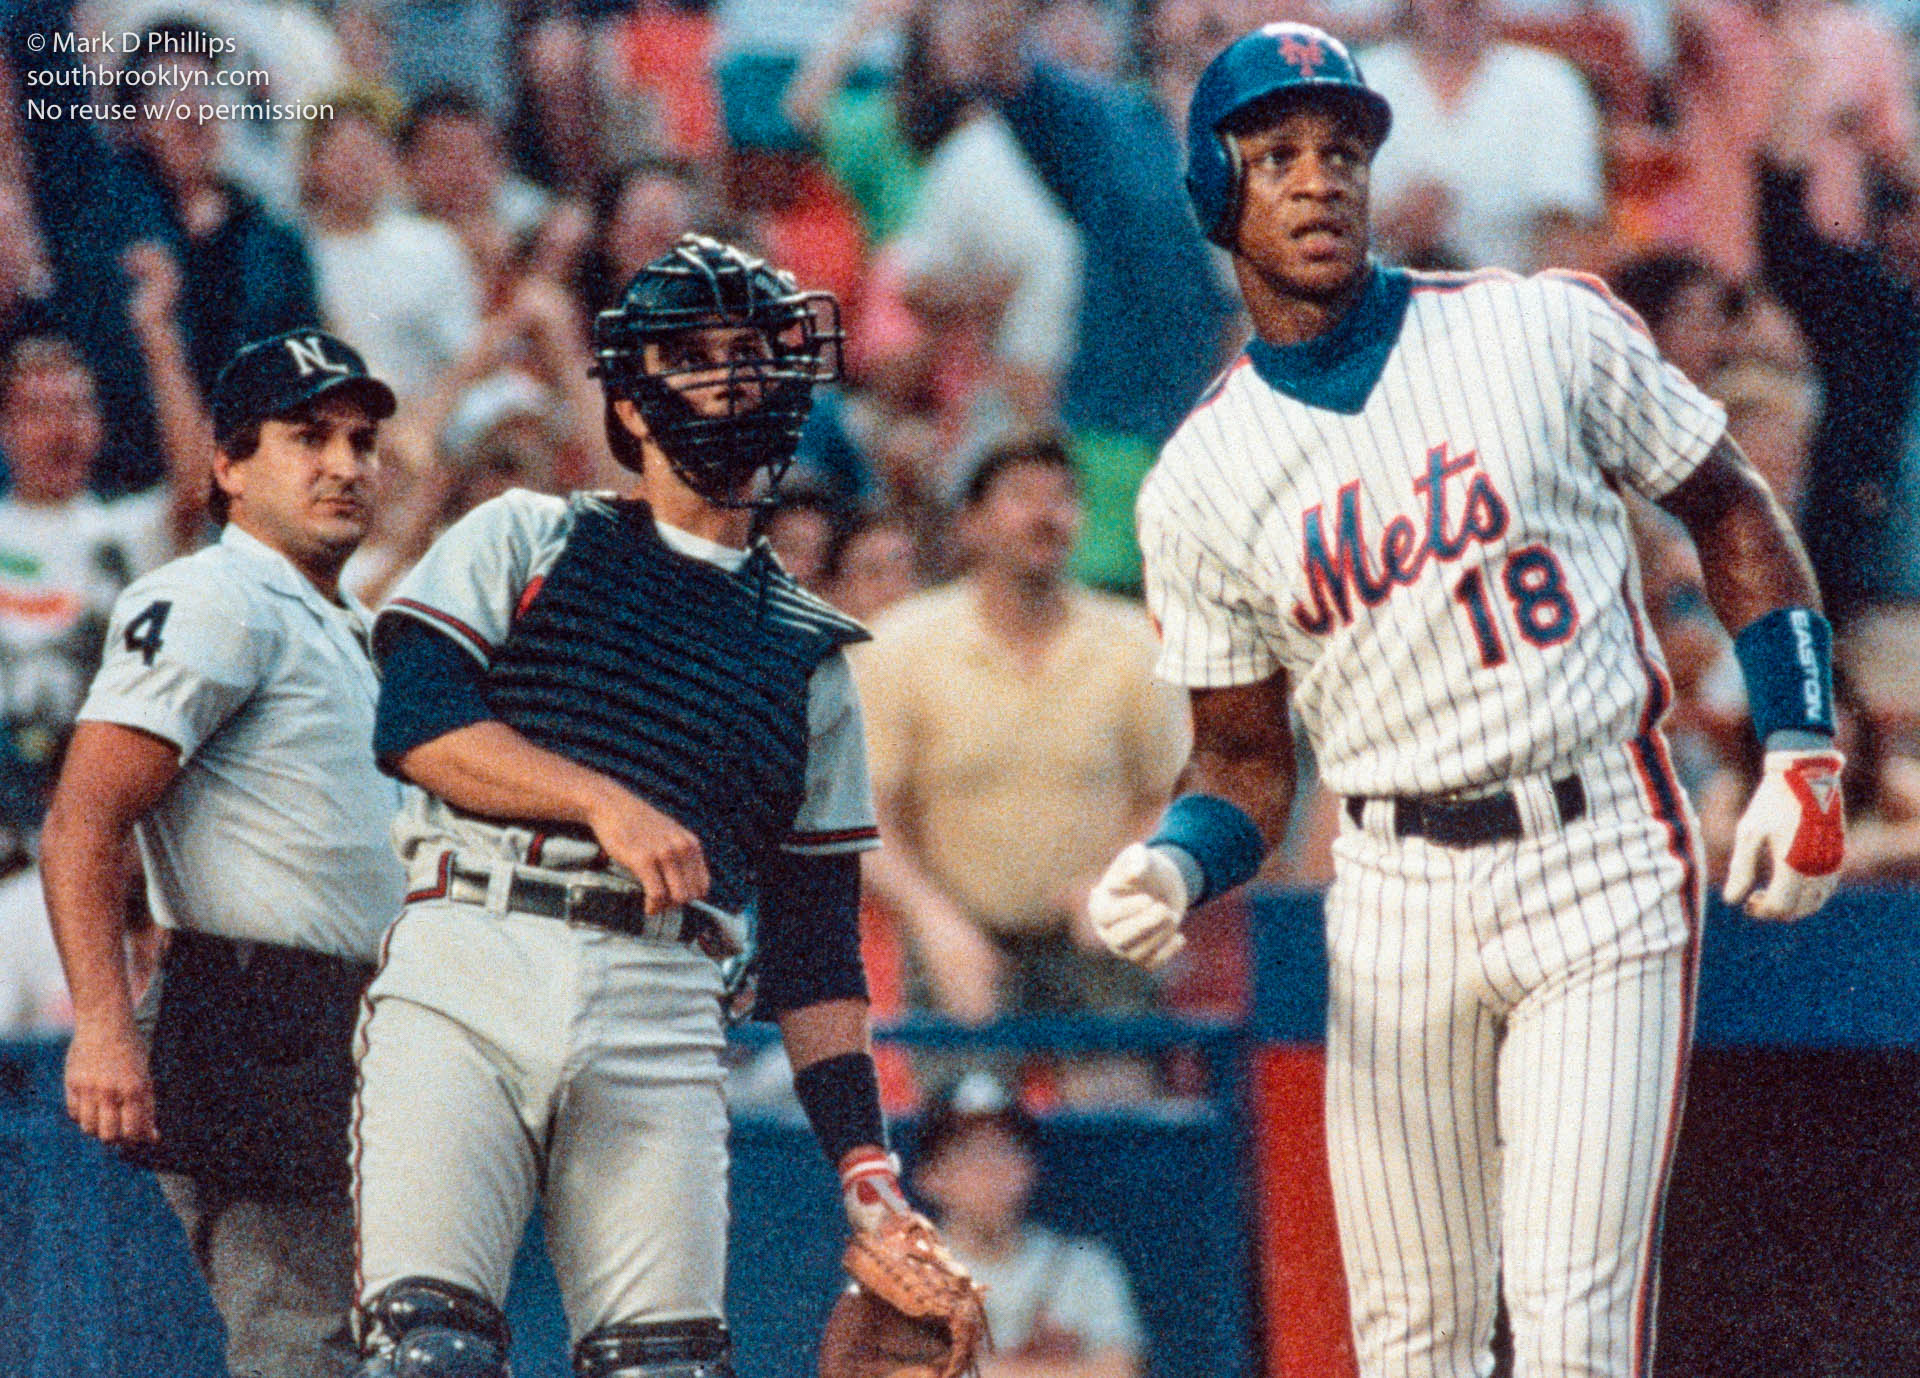 New York Mets Daryl Strawberry